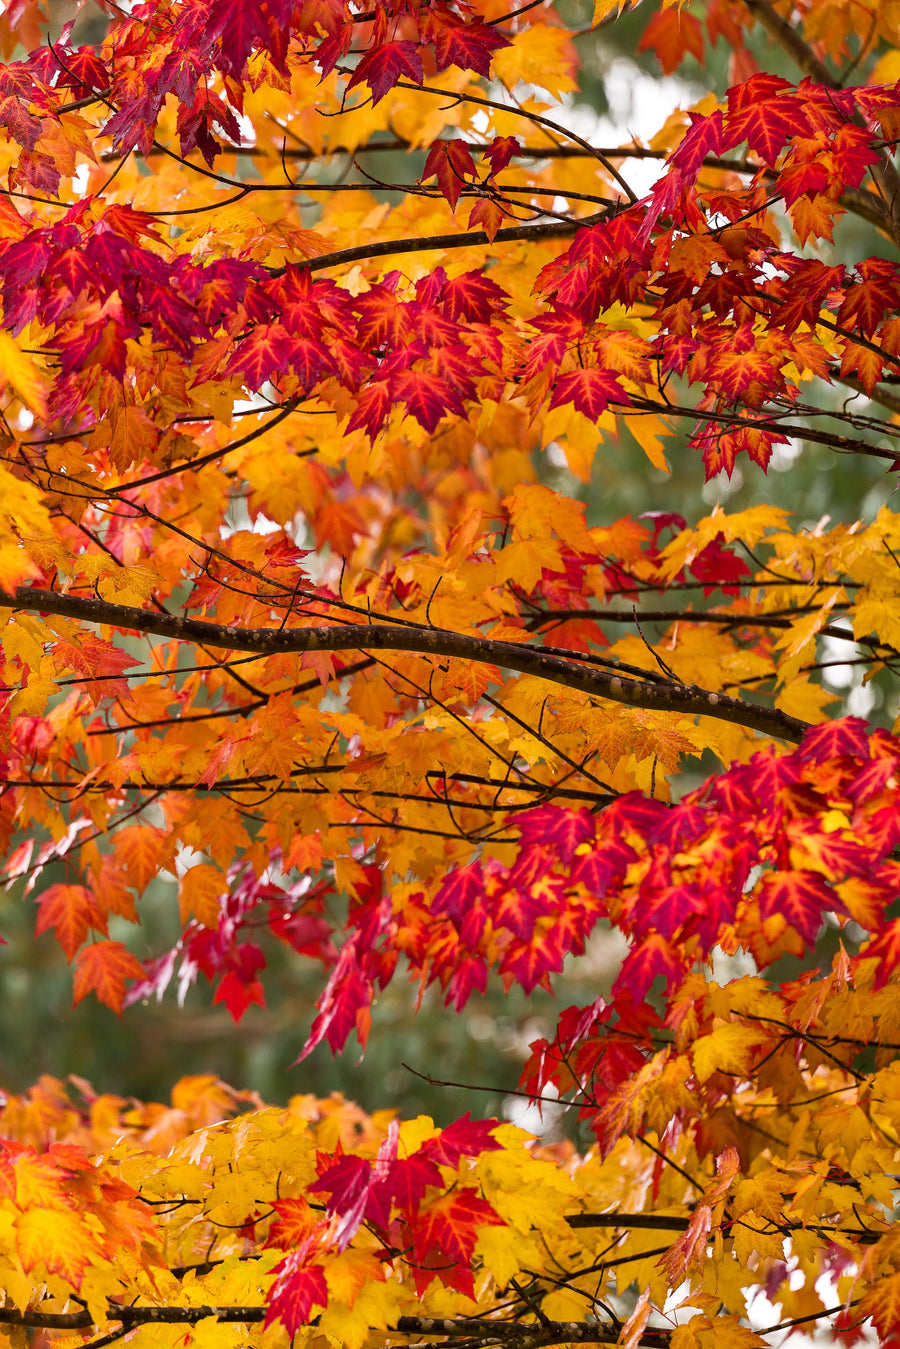 The burnt reds, oranges and yellows leaves of autumn.